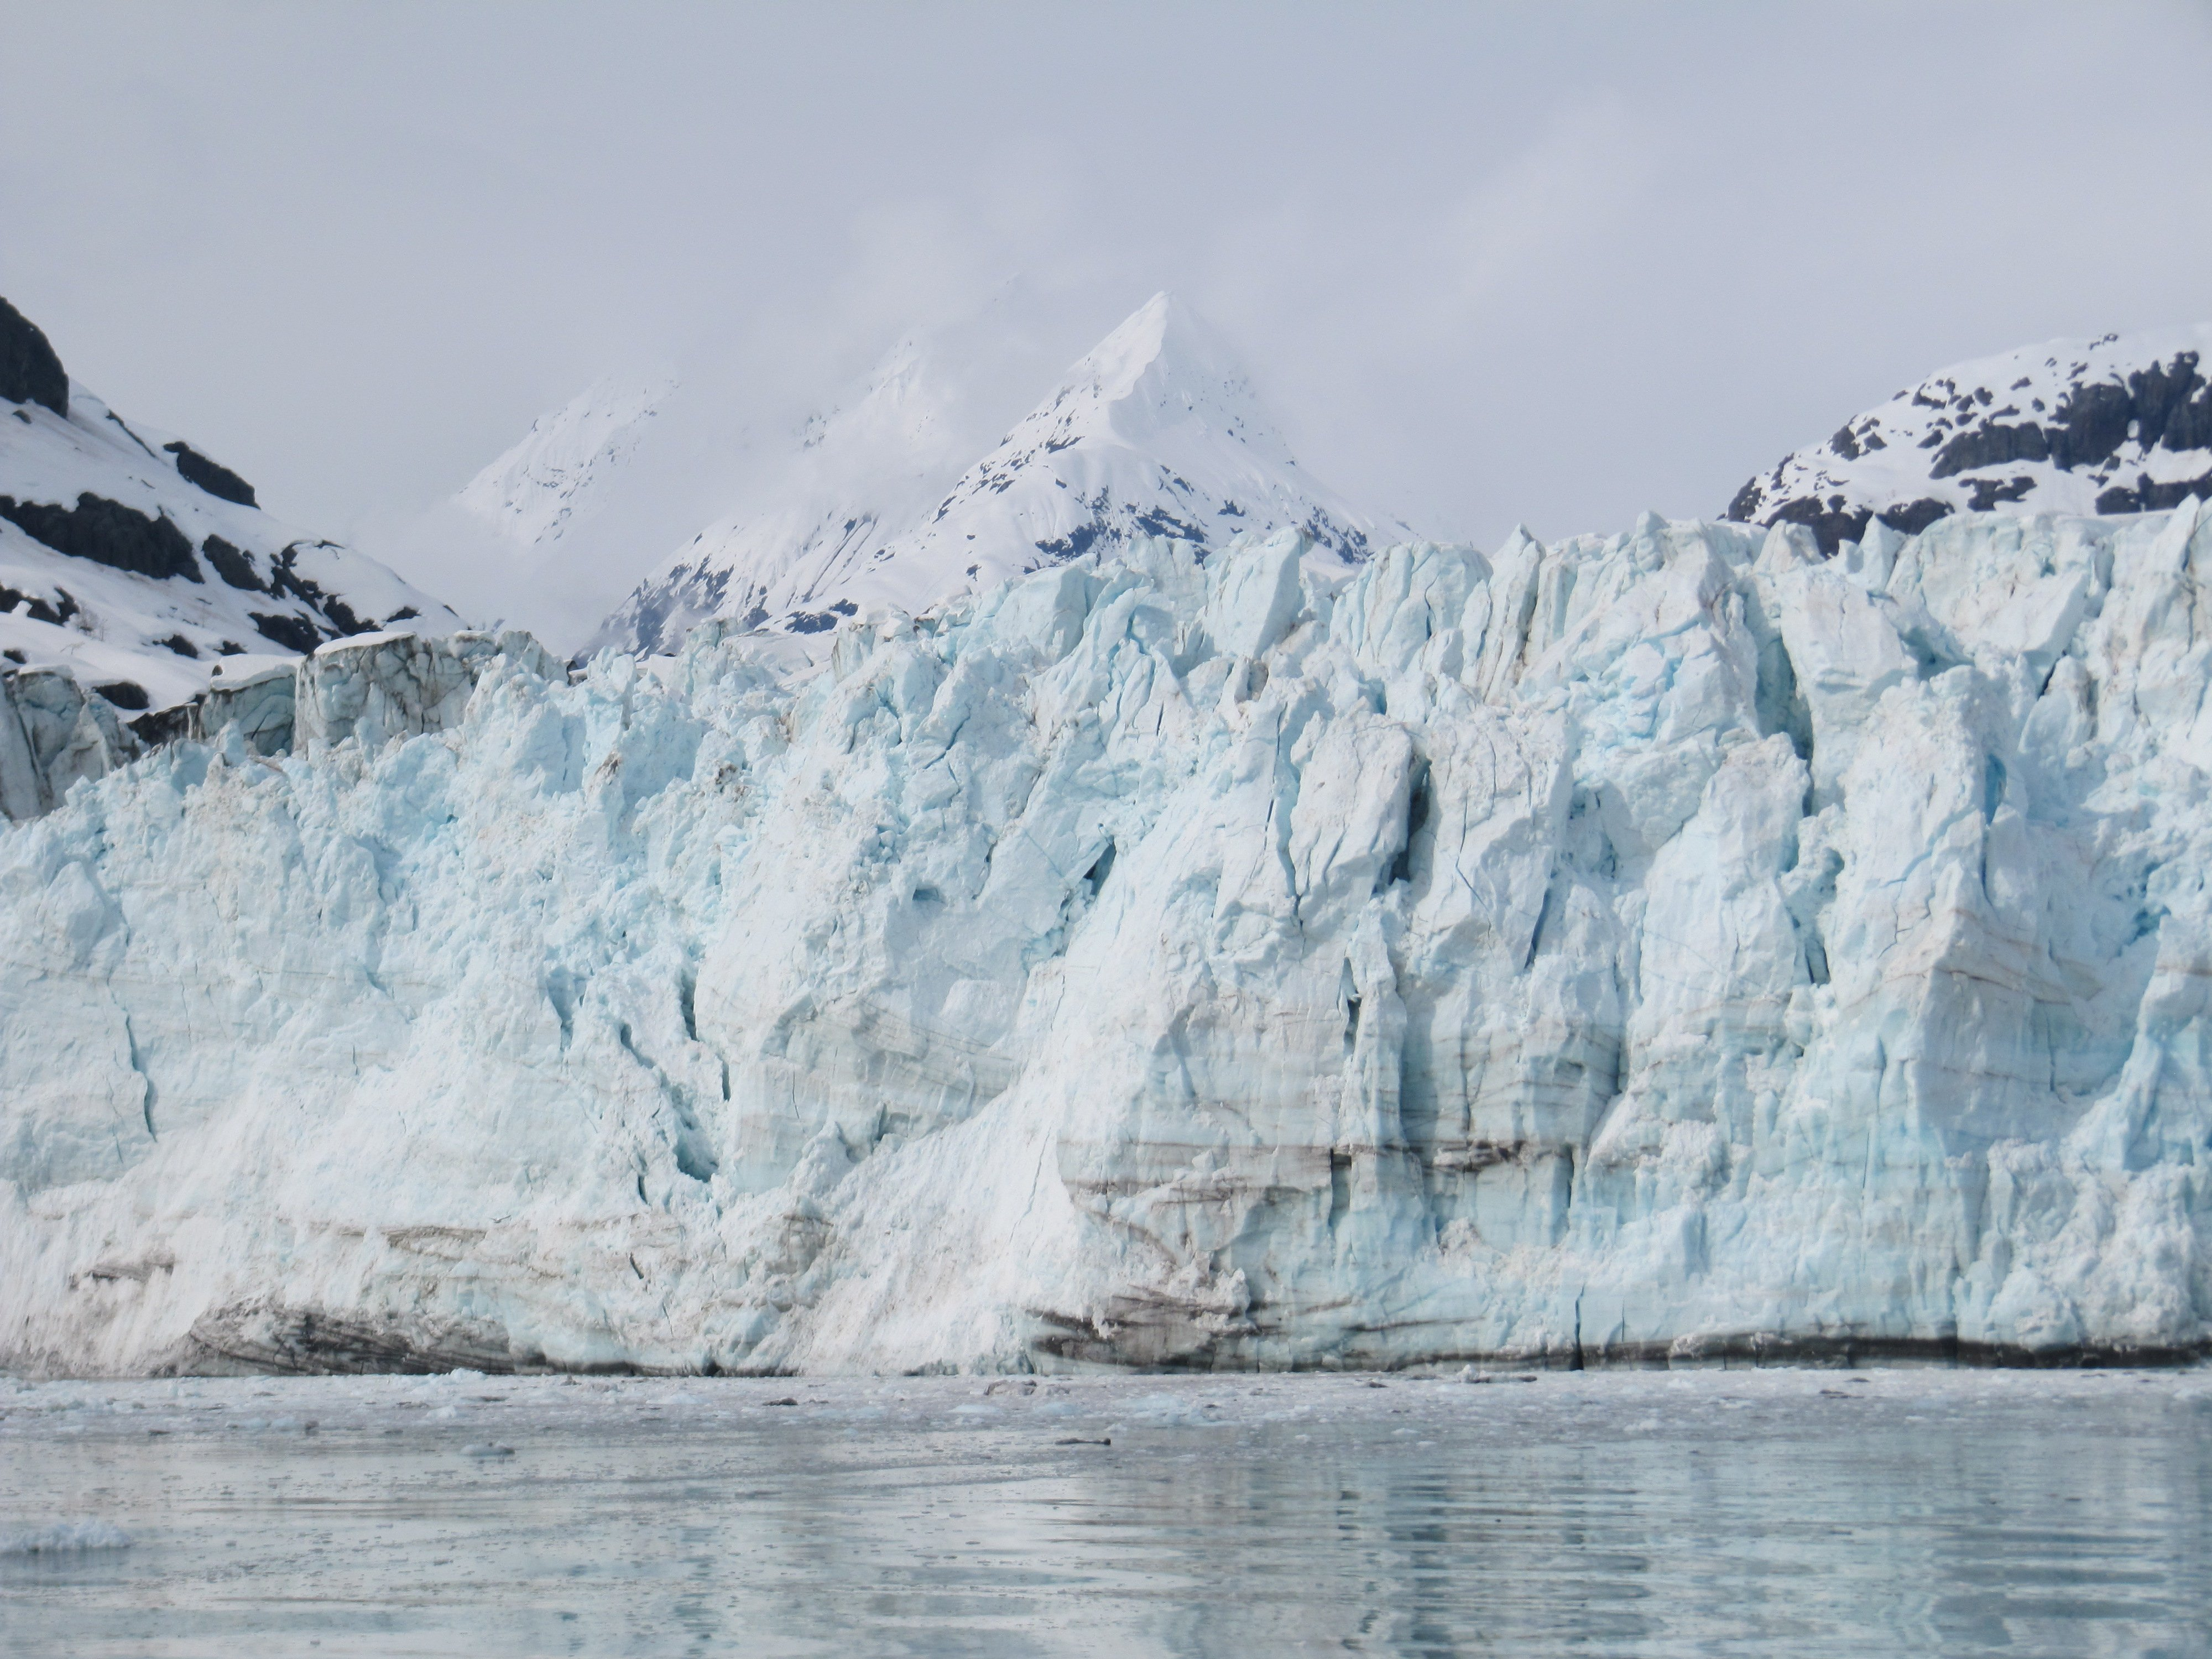 Marjory Glacier from Alaska Cruise